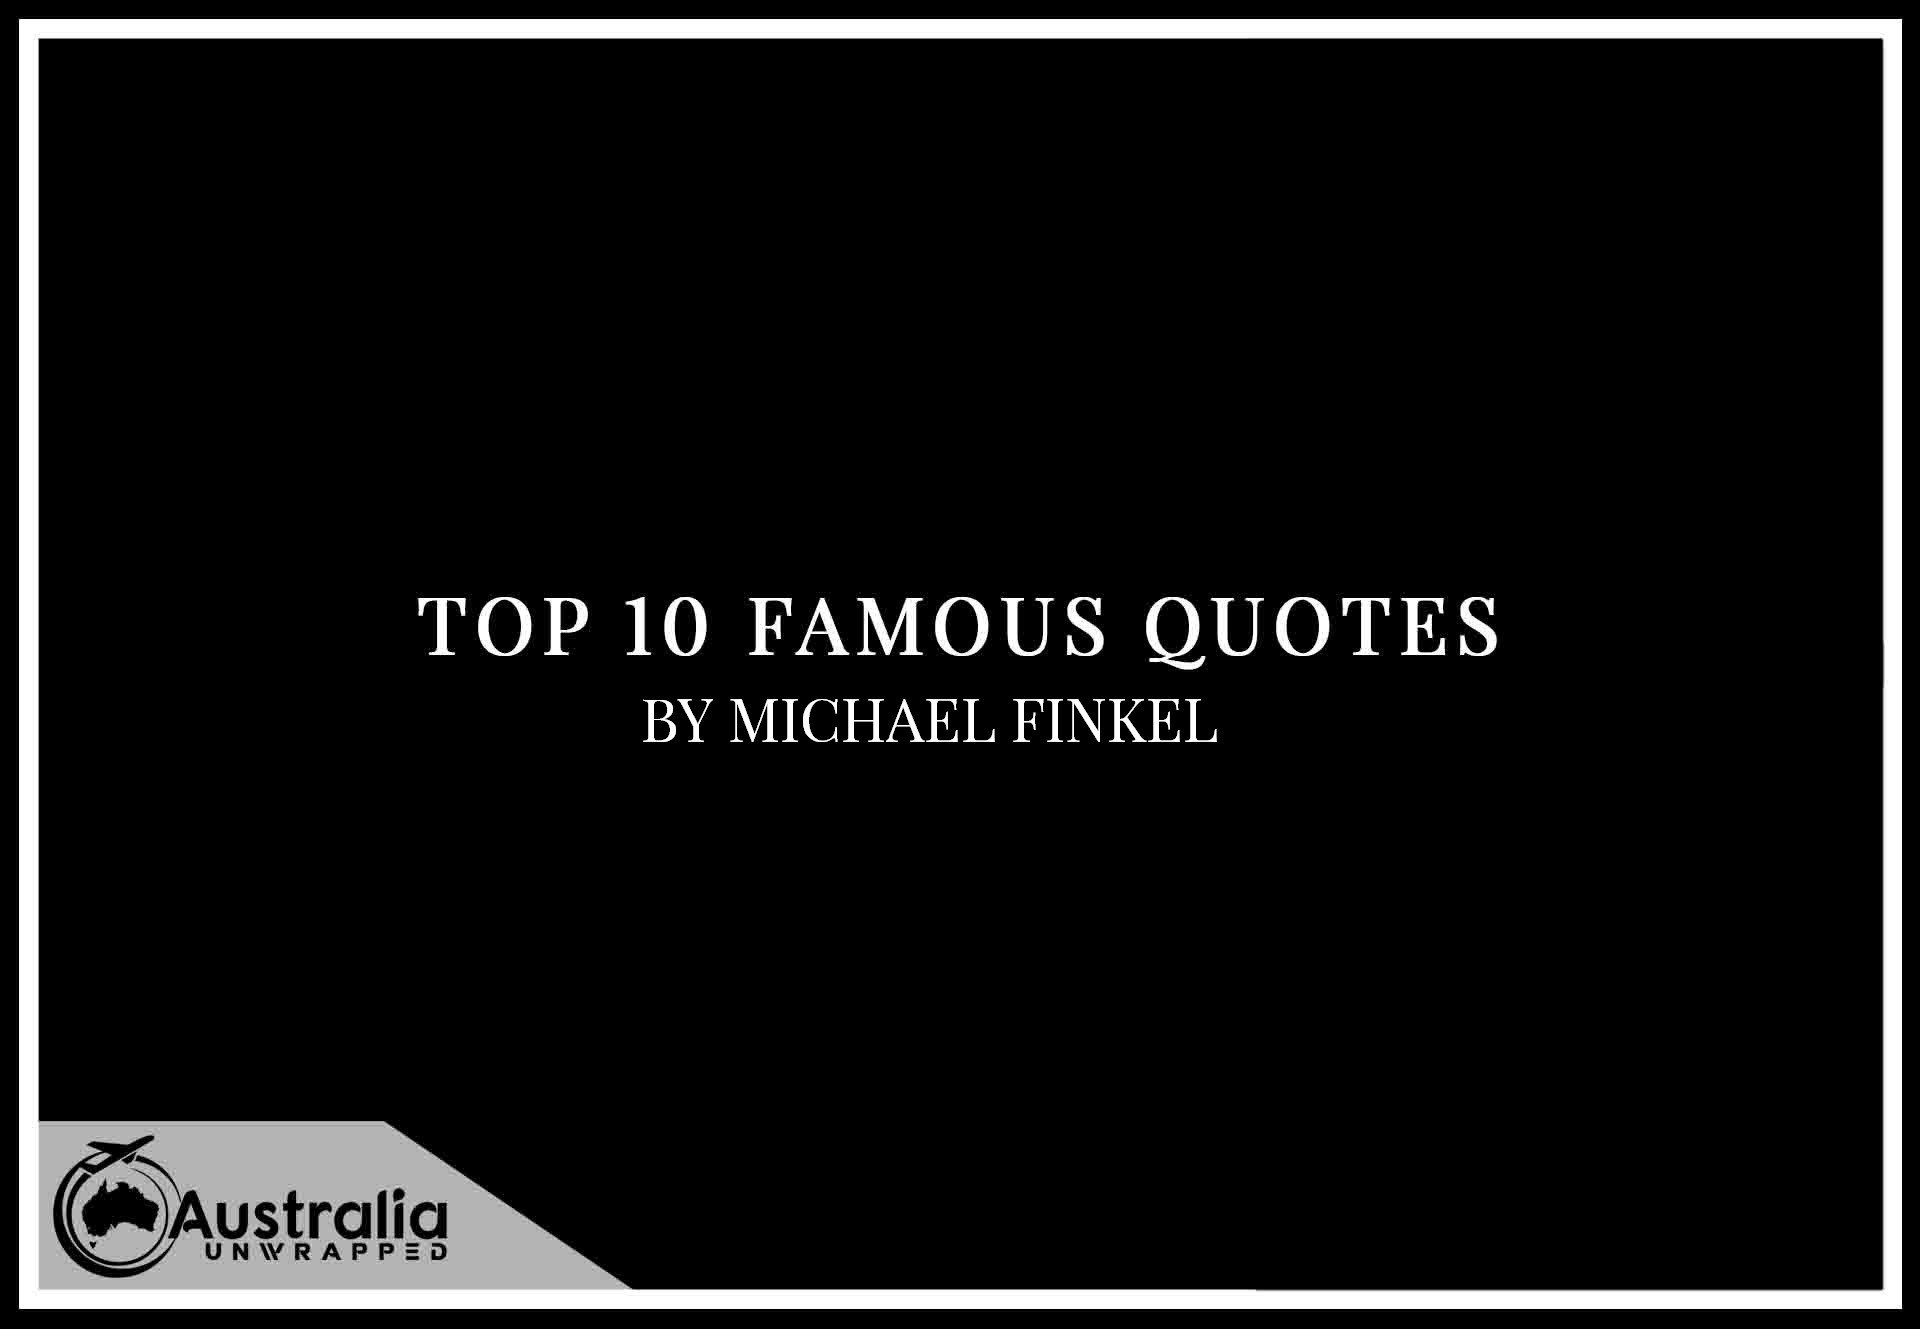 Top 10 Famous Quotes by Author Michael Finkel